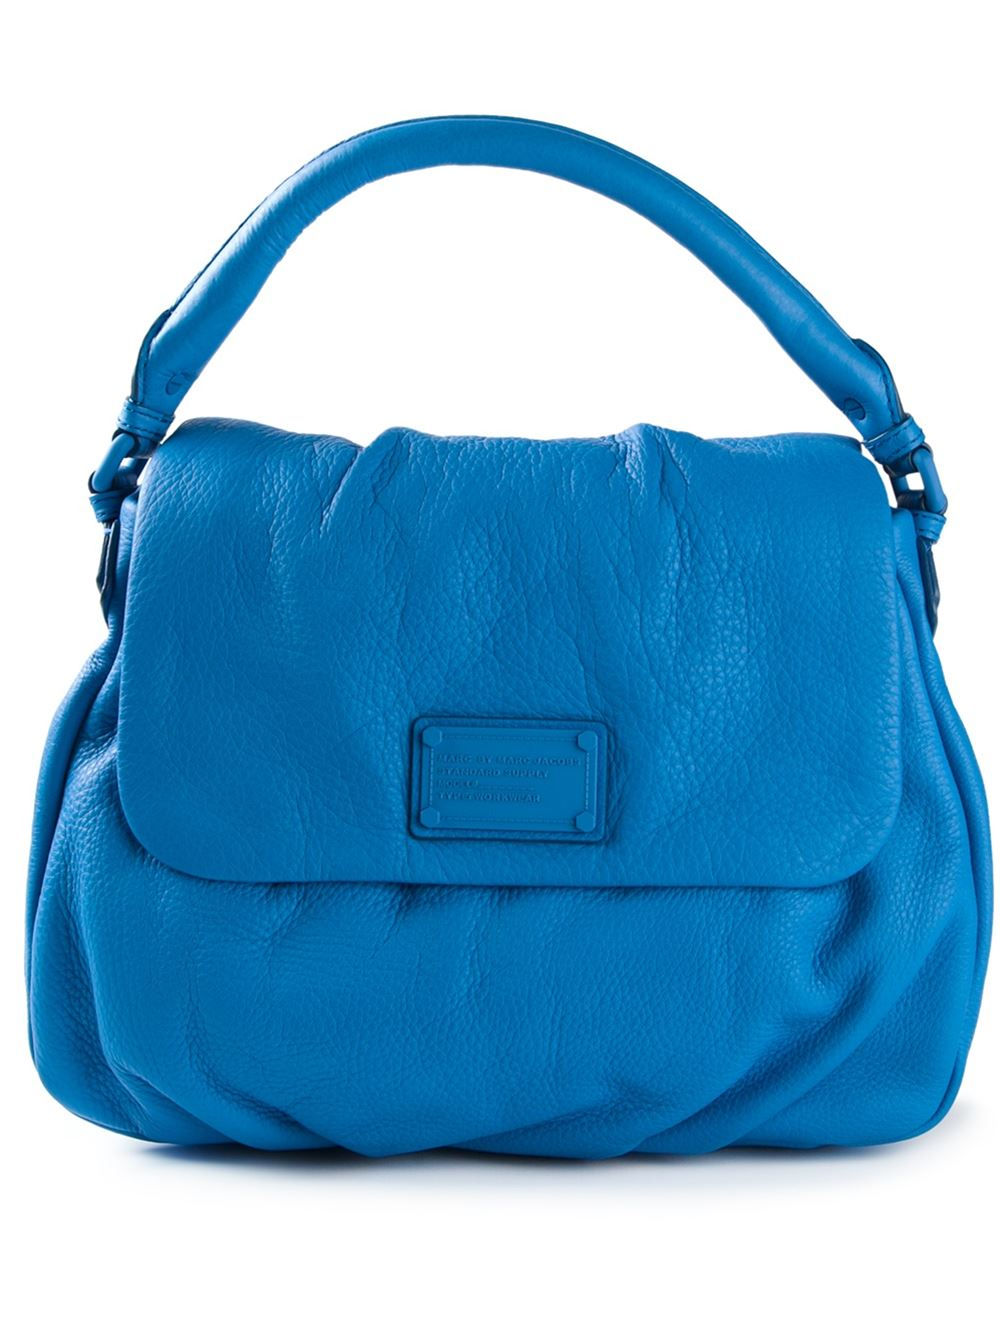 marc by marc electro q lil ukita tote bag in blue